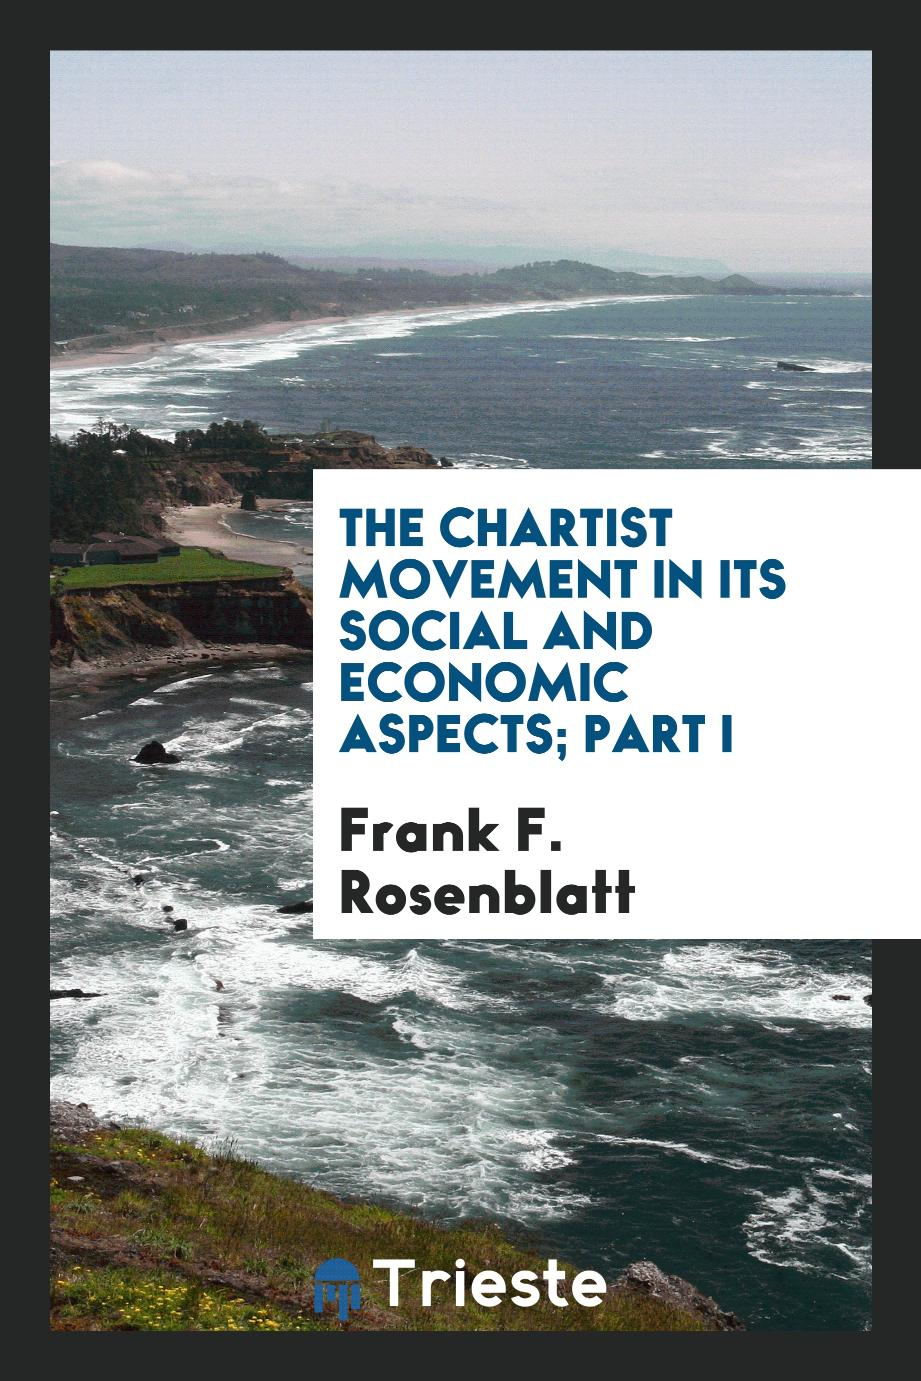 The Chartist Movement in Its Social and Economic Aspects; Part I